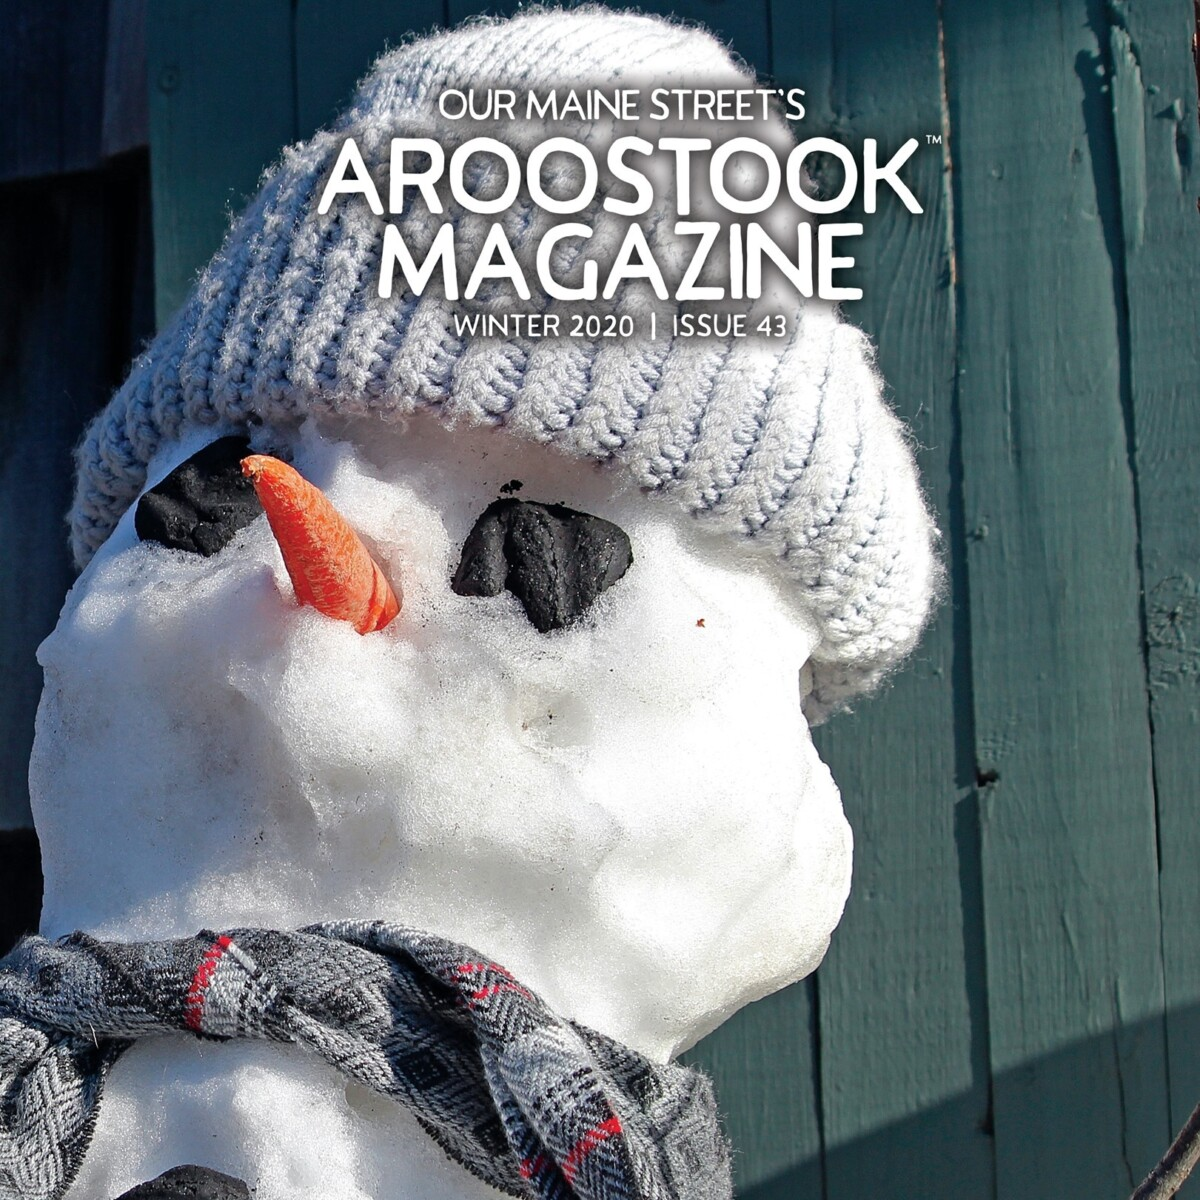 Our Maine Street's Aroostook Magazine Winter 2020 Cover (photo by Michael Gudreau)